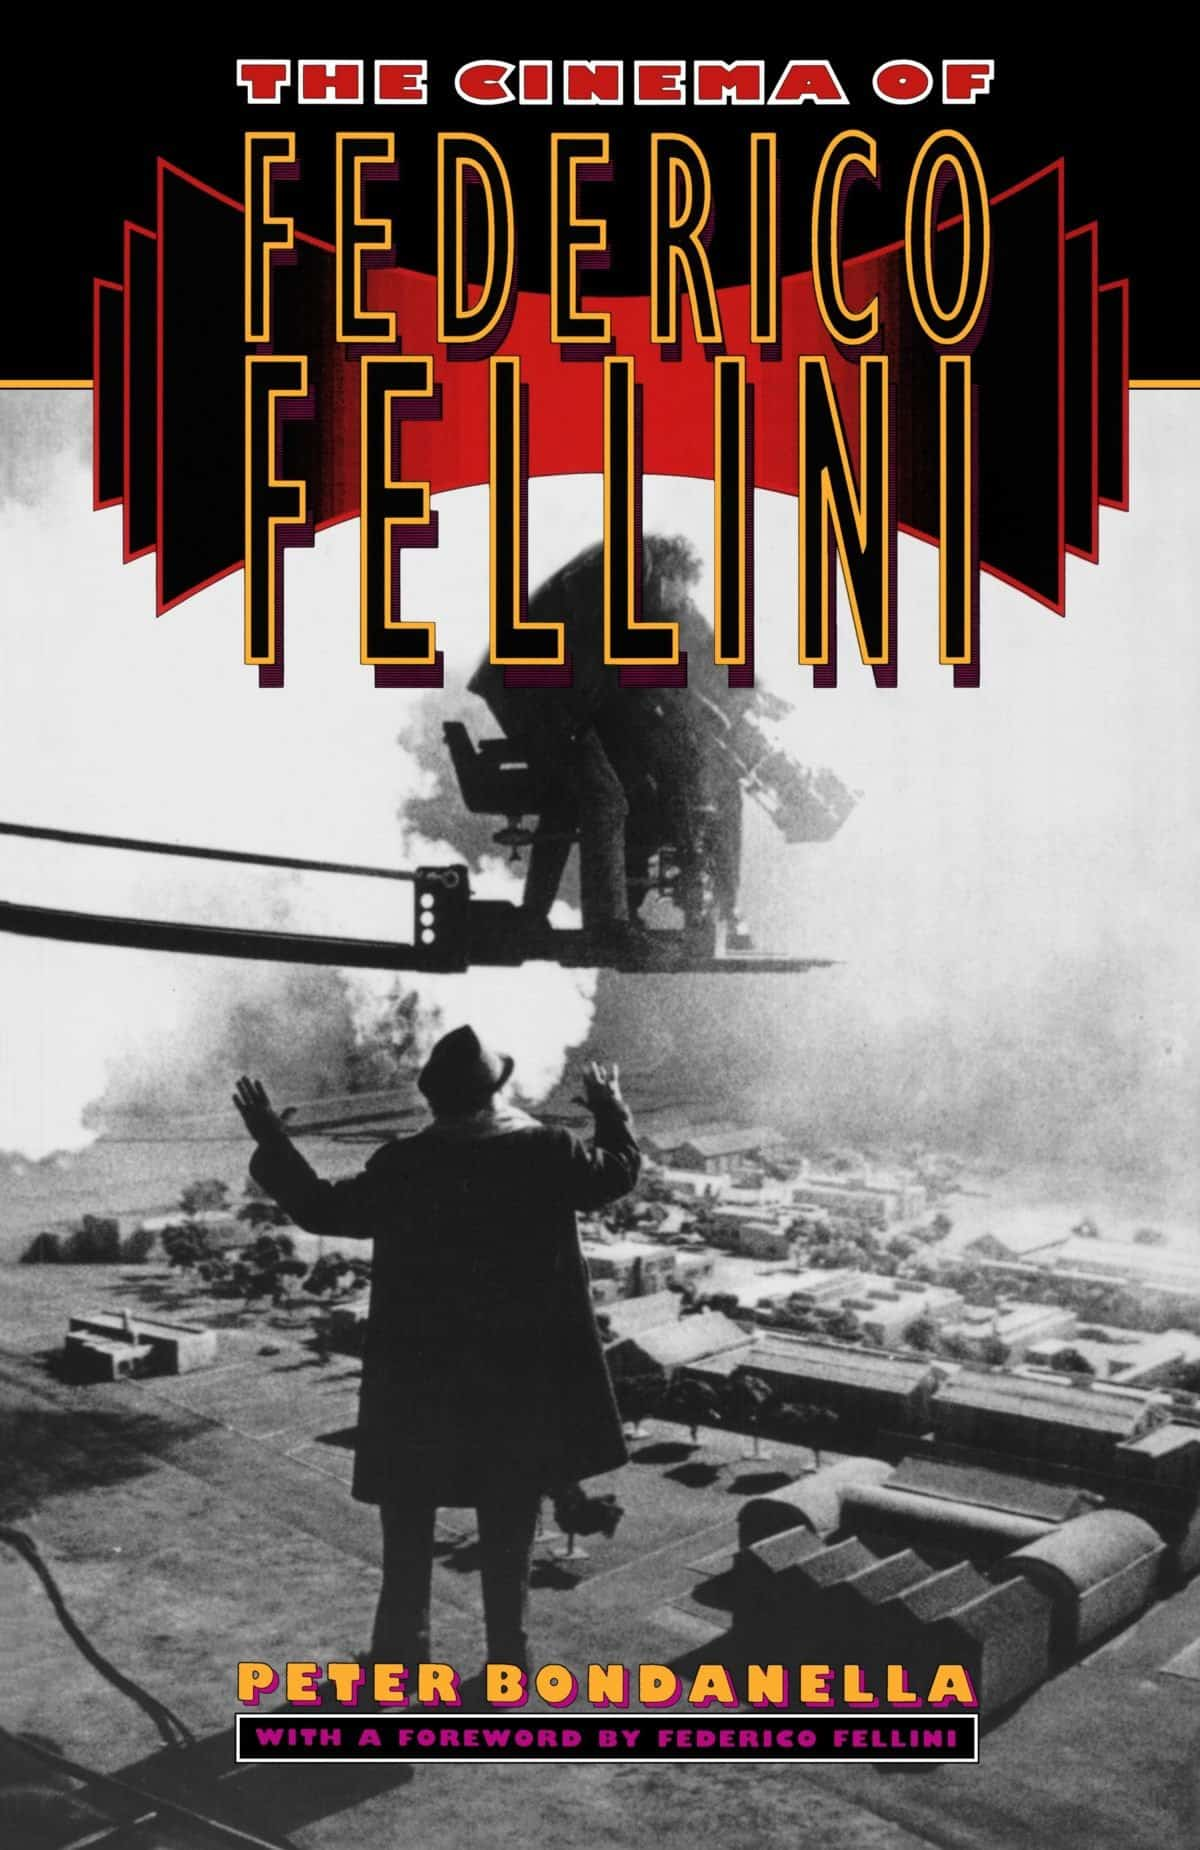 The Cinema of Federico Fellini